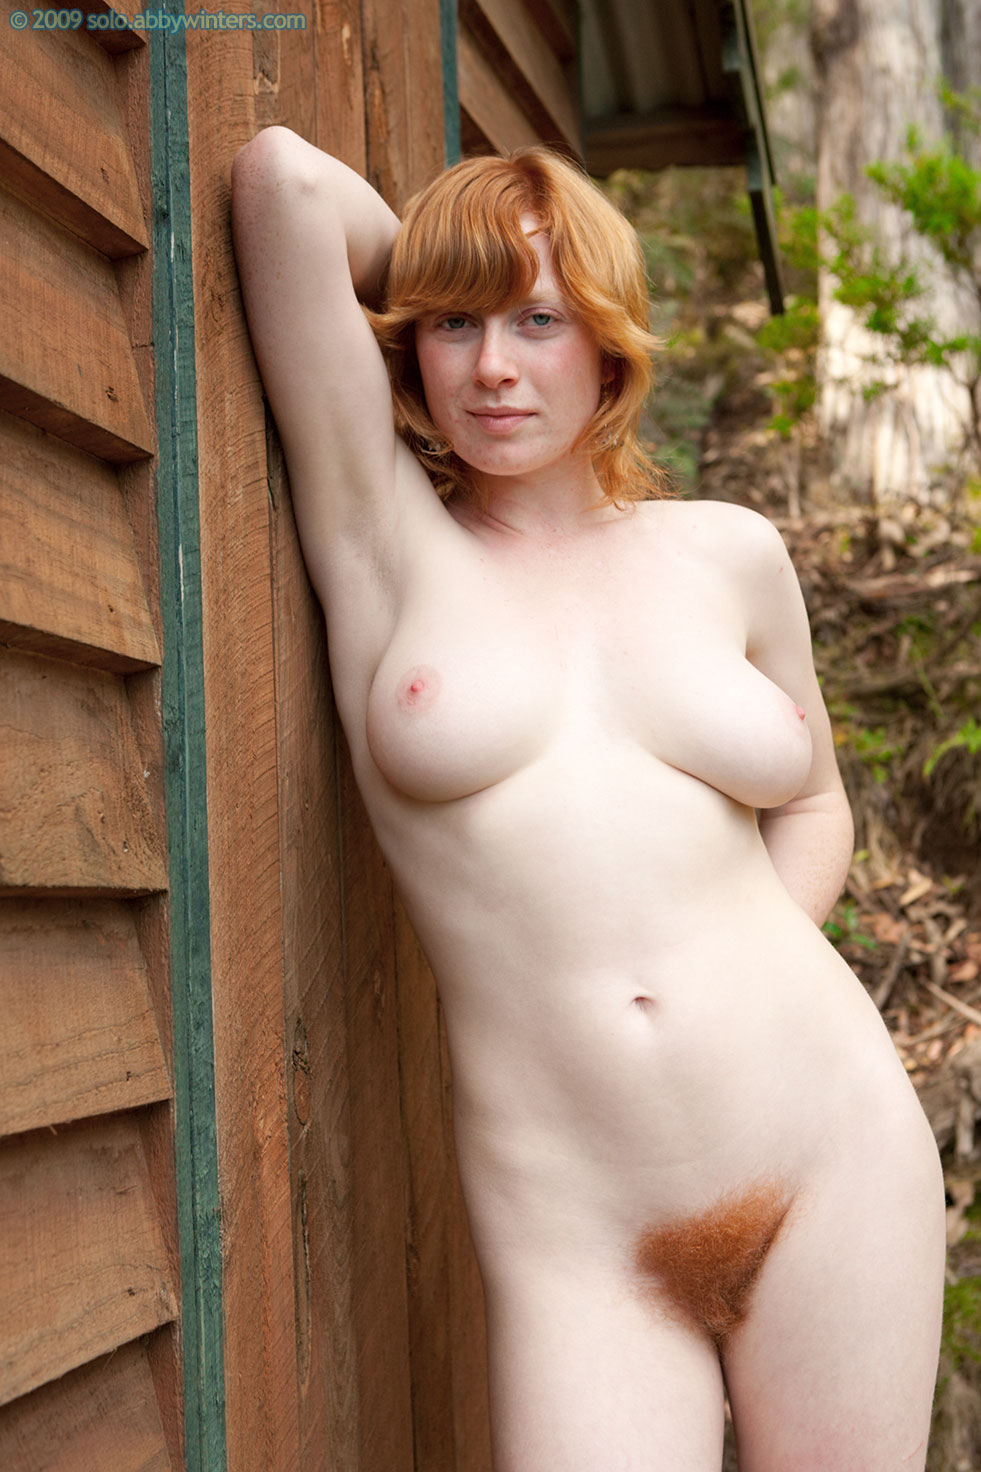 Natural redhead hairy standing in the nude really. And